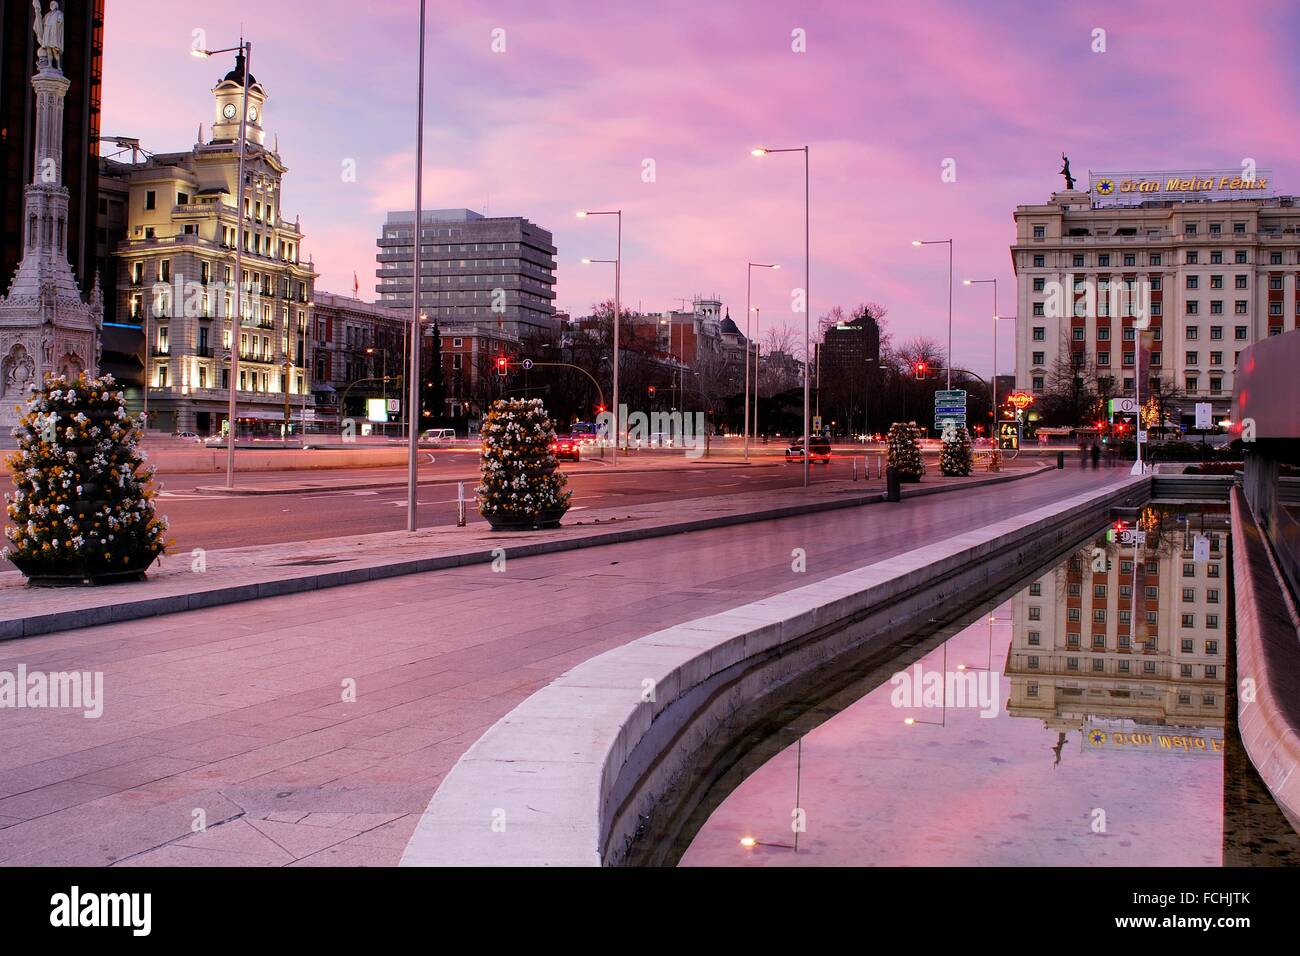 Colon square between Castellana and Recoletos promenades in Madrid, Spain. - Stock Image